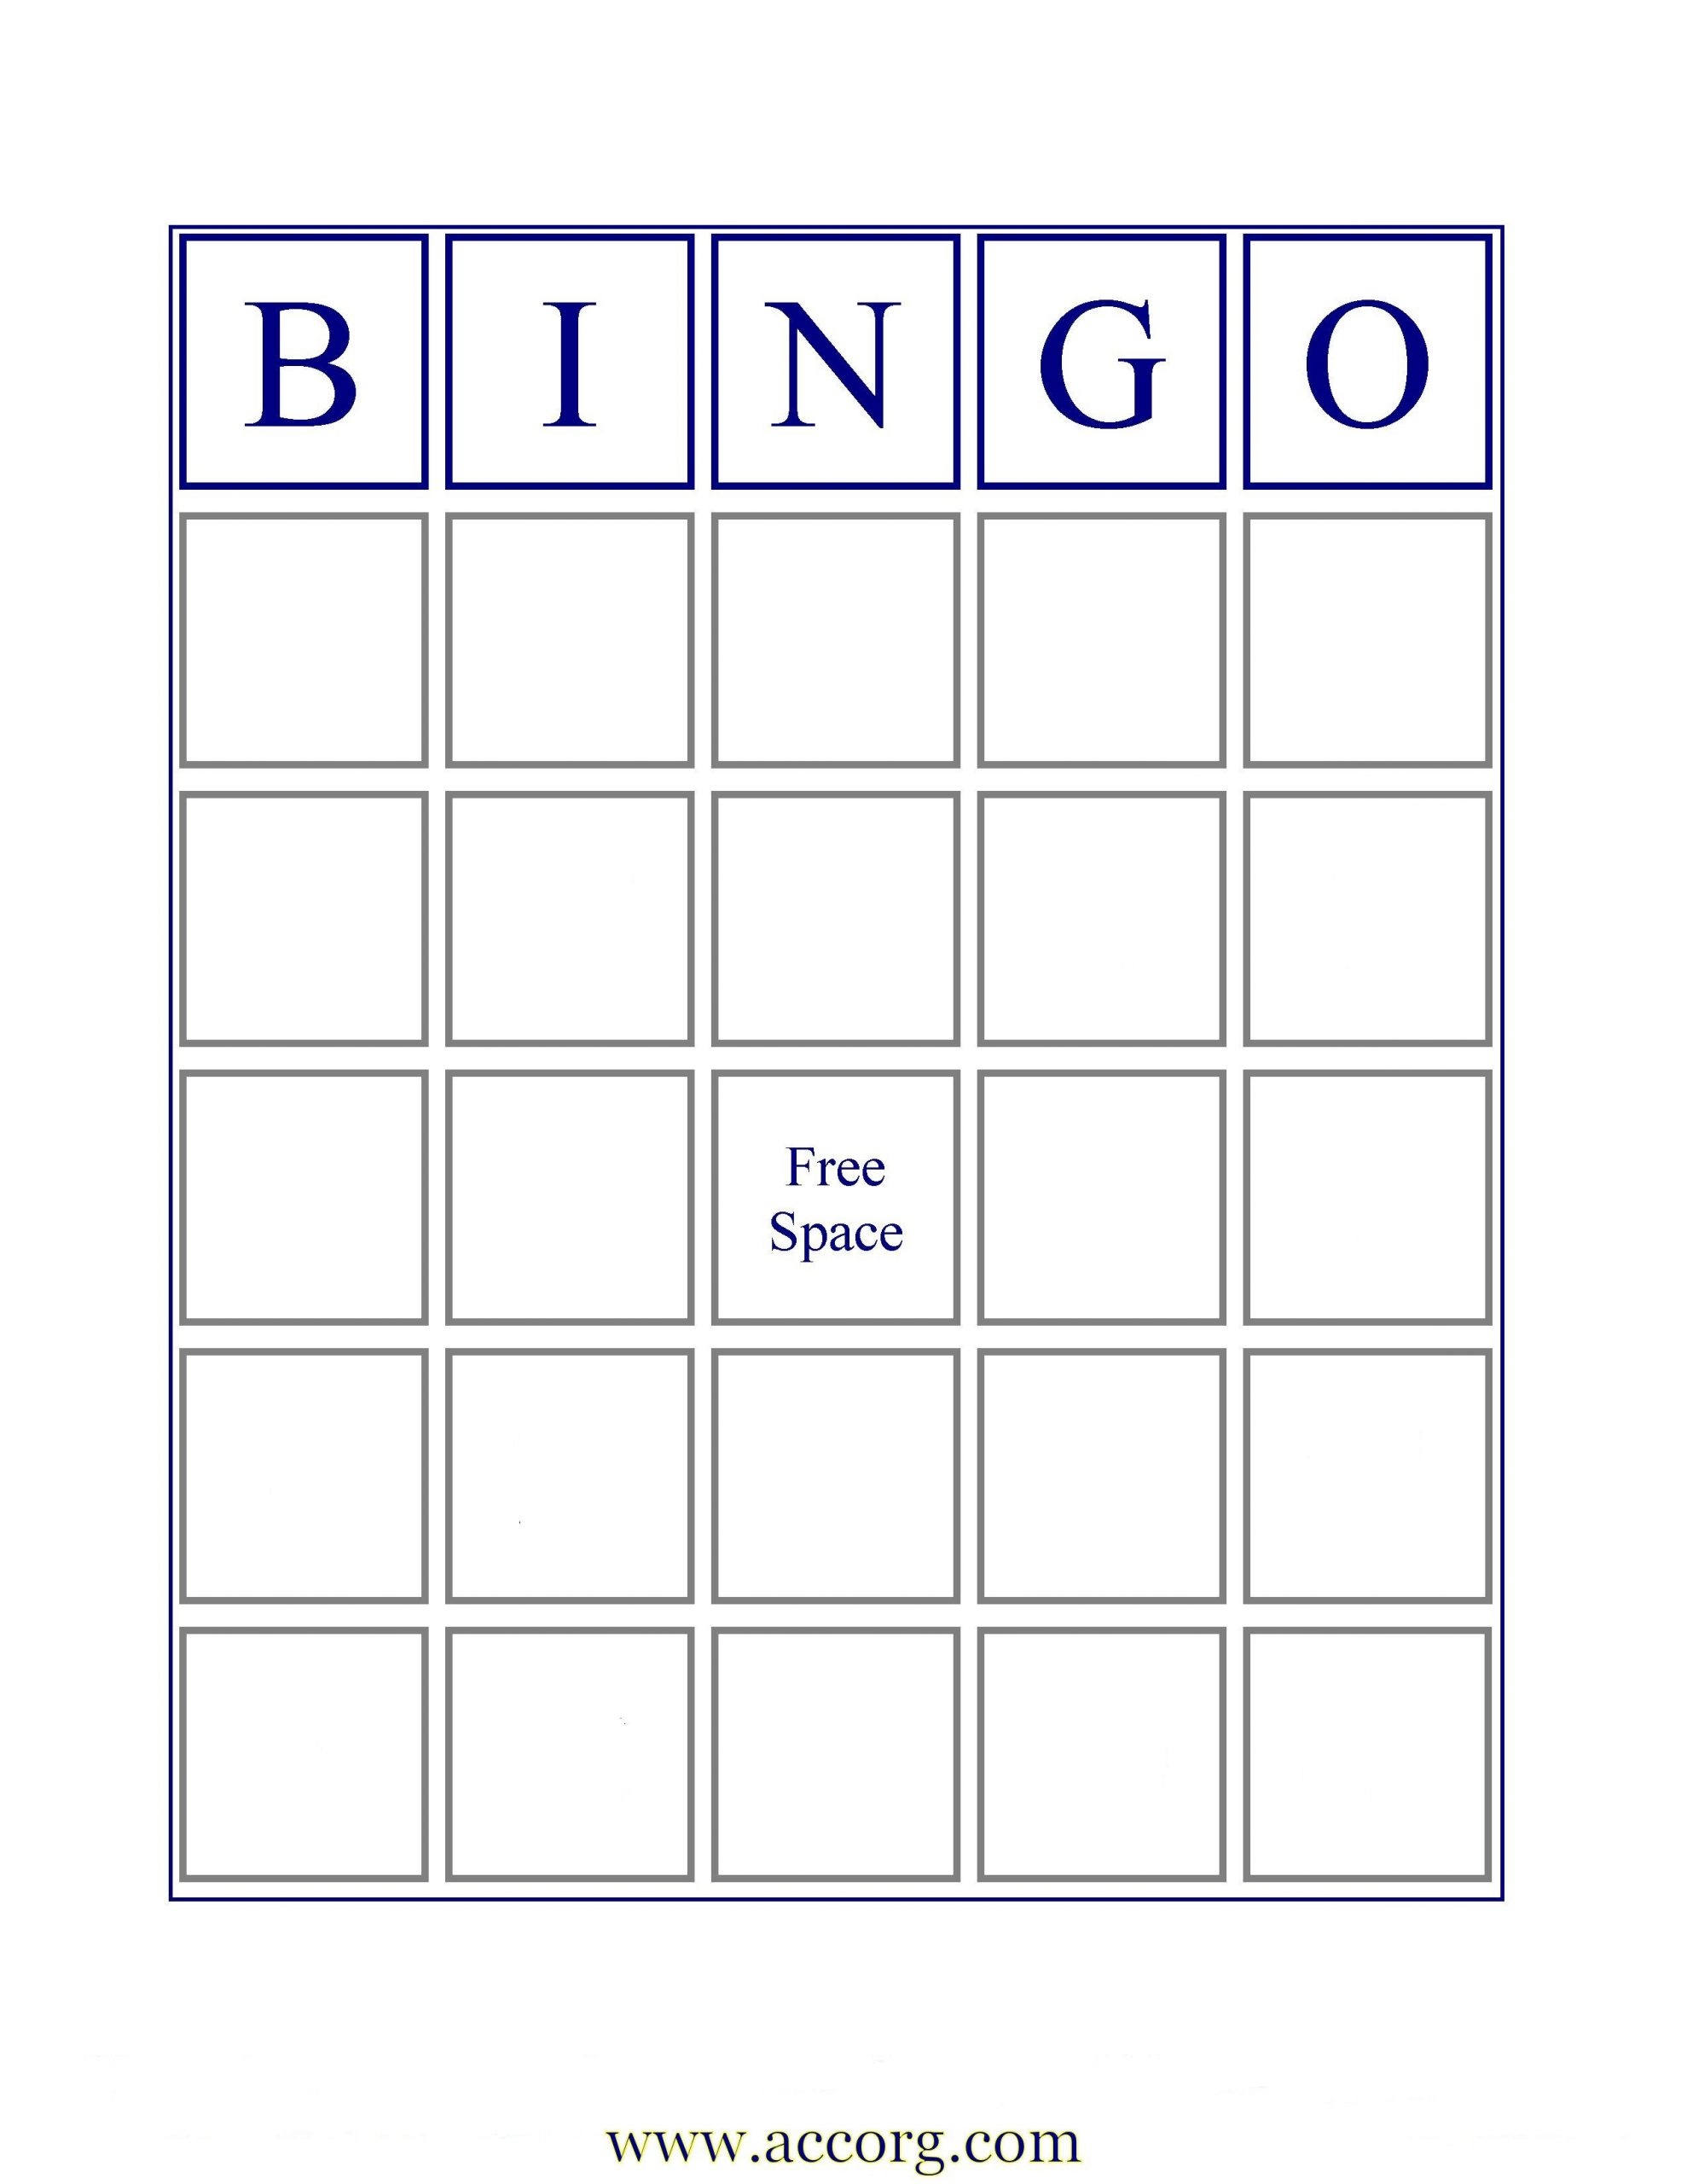 Blank Bingo Cards | If You Want An Image Of A Standard Bingo